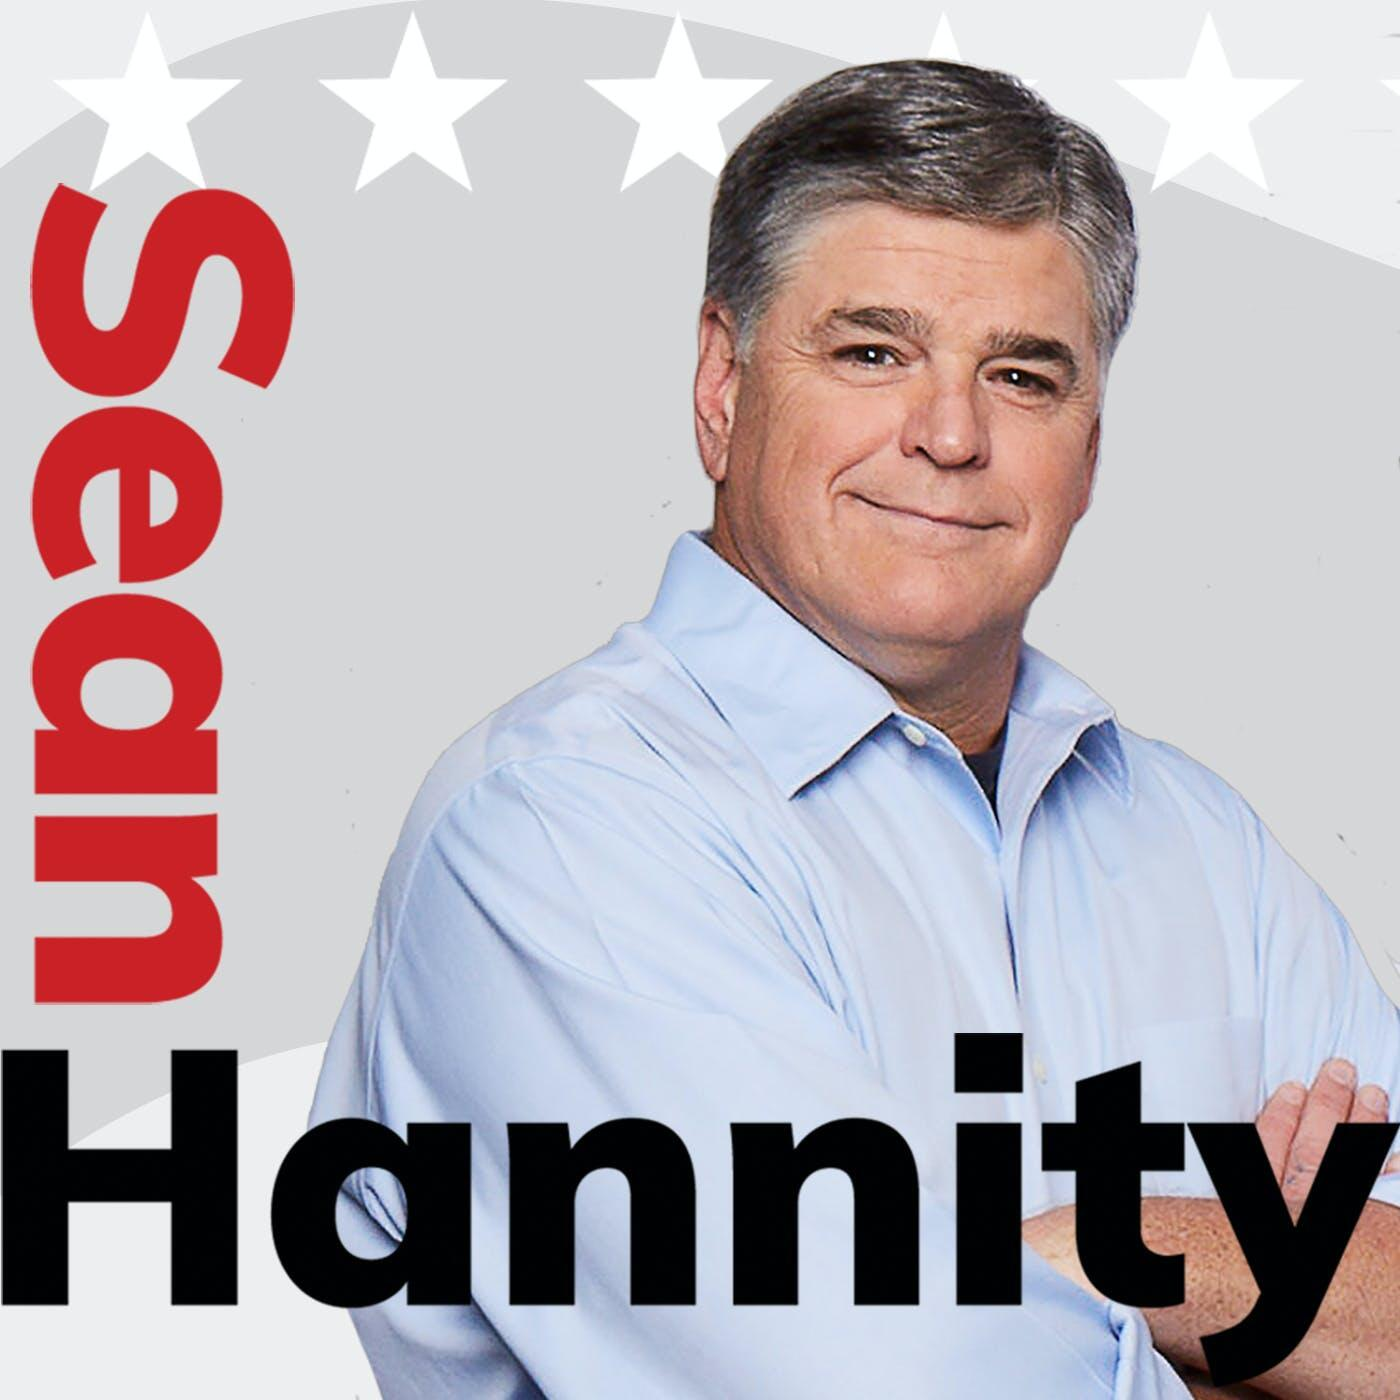 Listen to the The Sean Hannity Show Episode - Trump Haters Are Breaking America on iHeartRadio | iHeartRadio